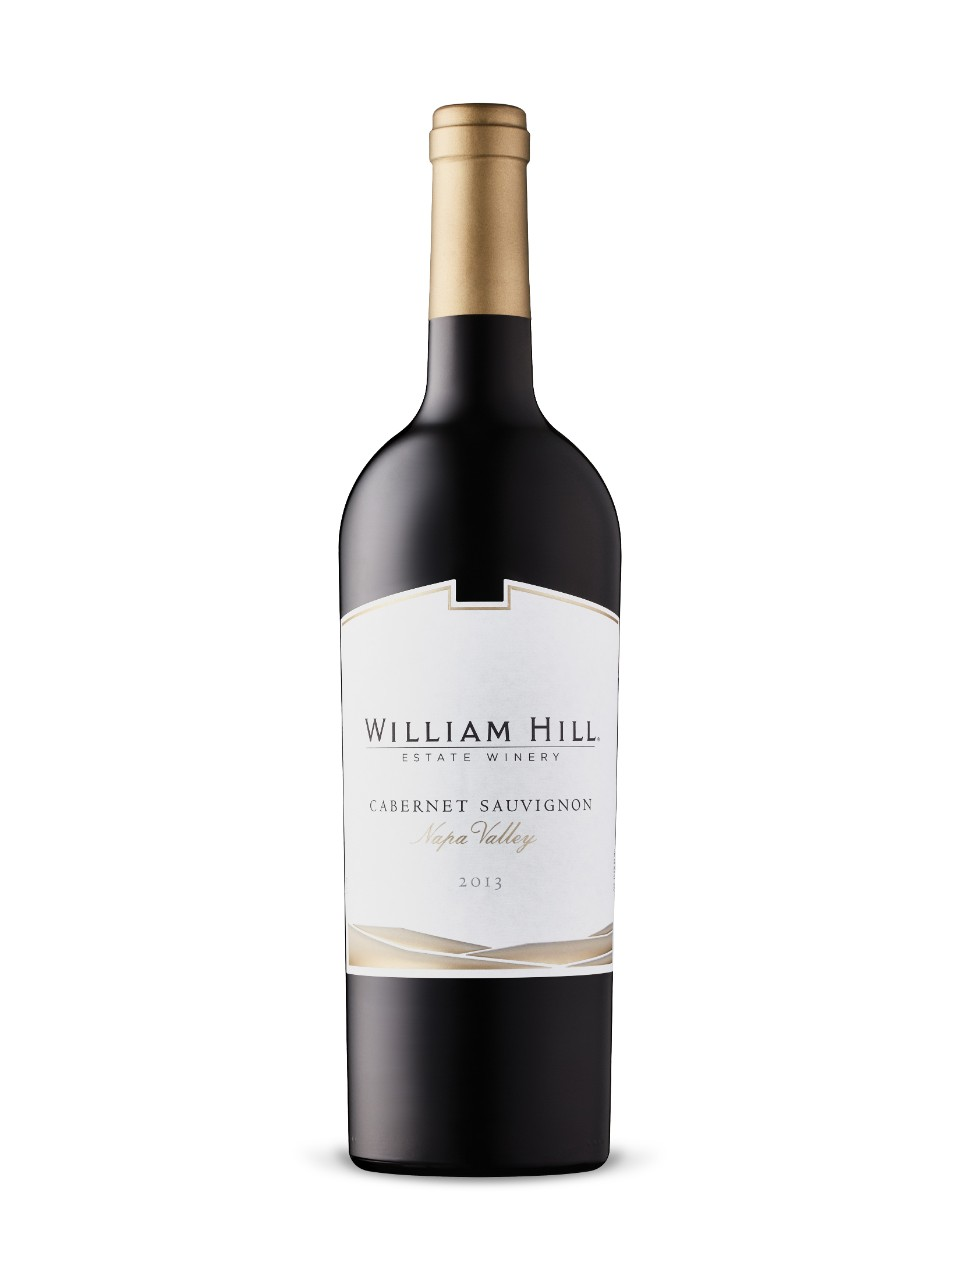 Cabernet Sauvignon William Hill 2013